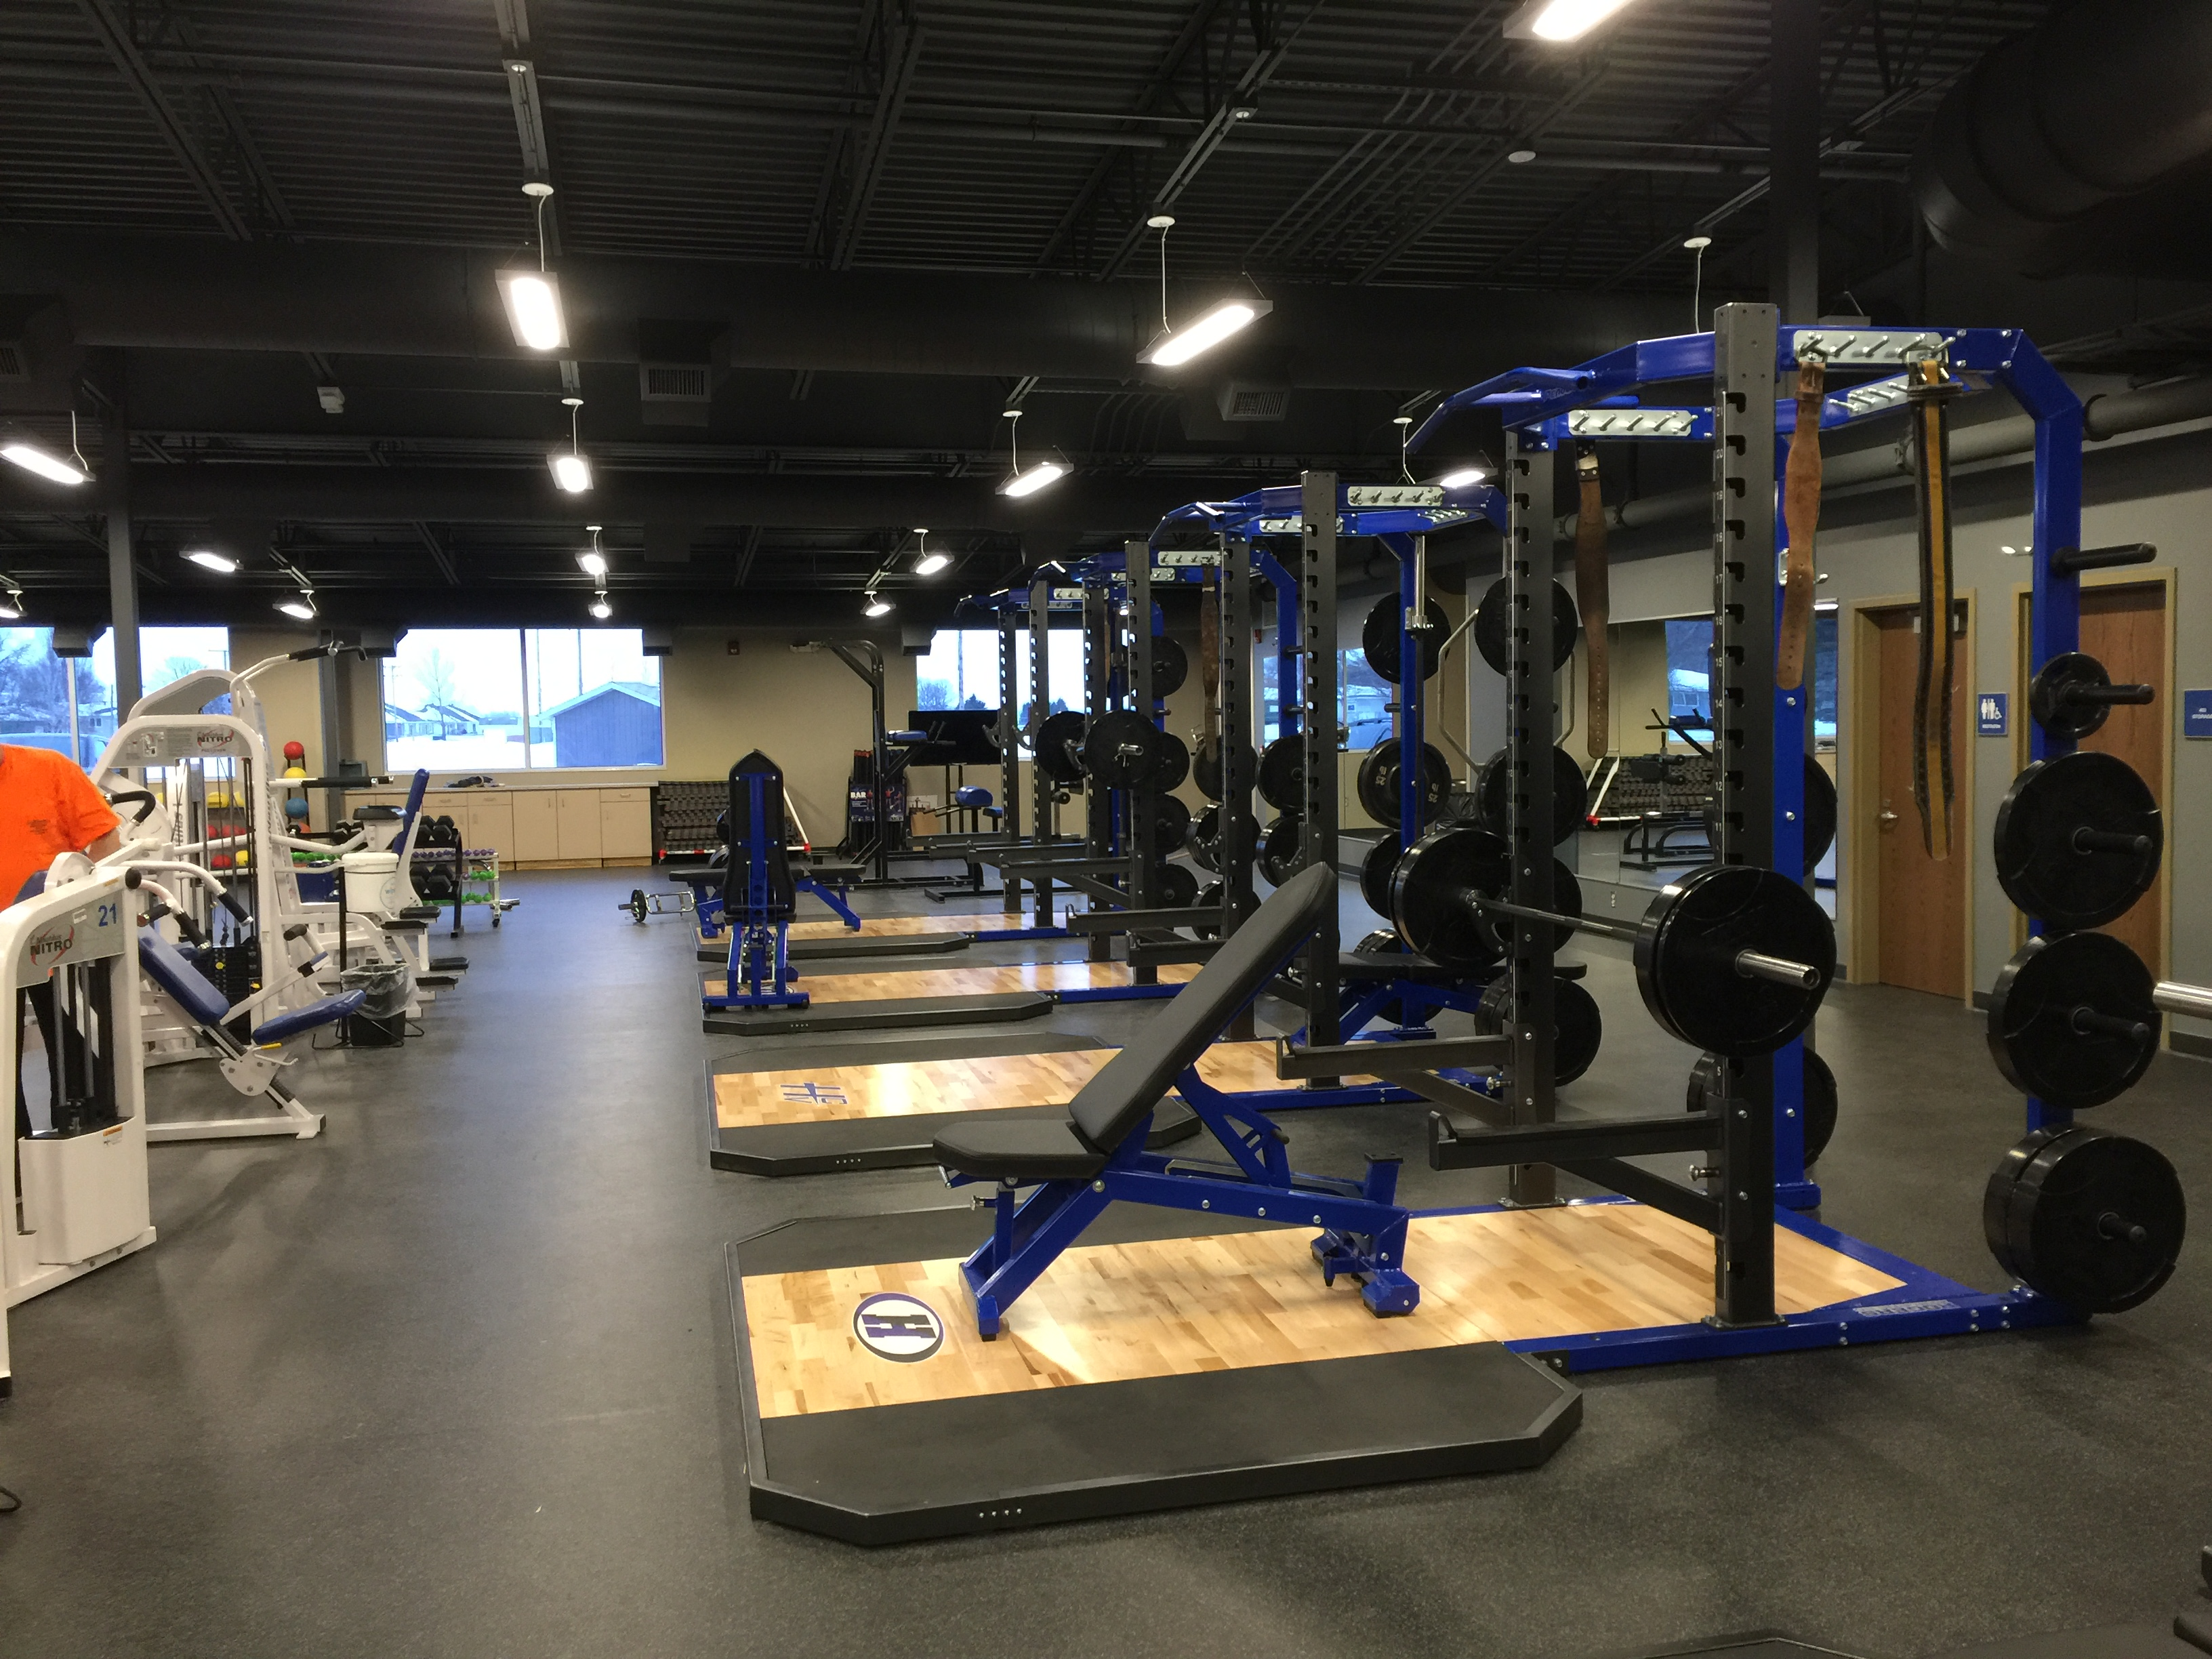 1588782138-fitness_center_weight_racks